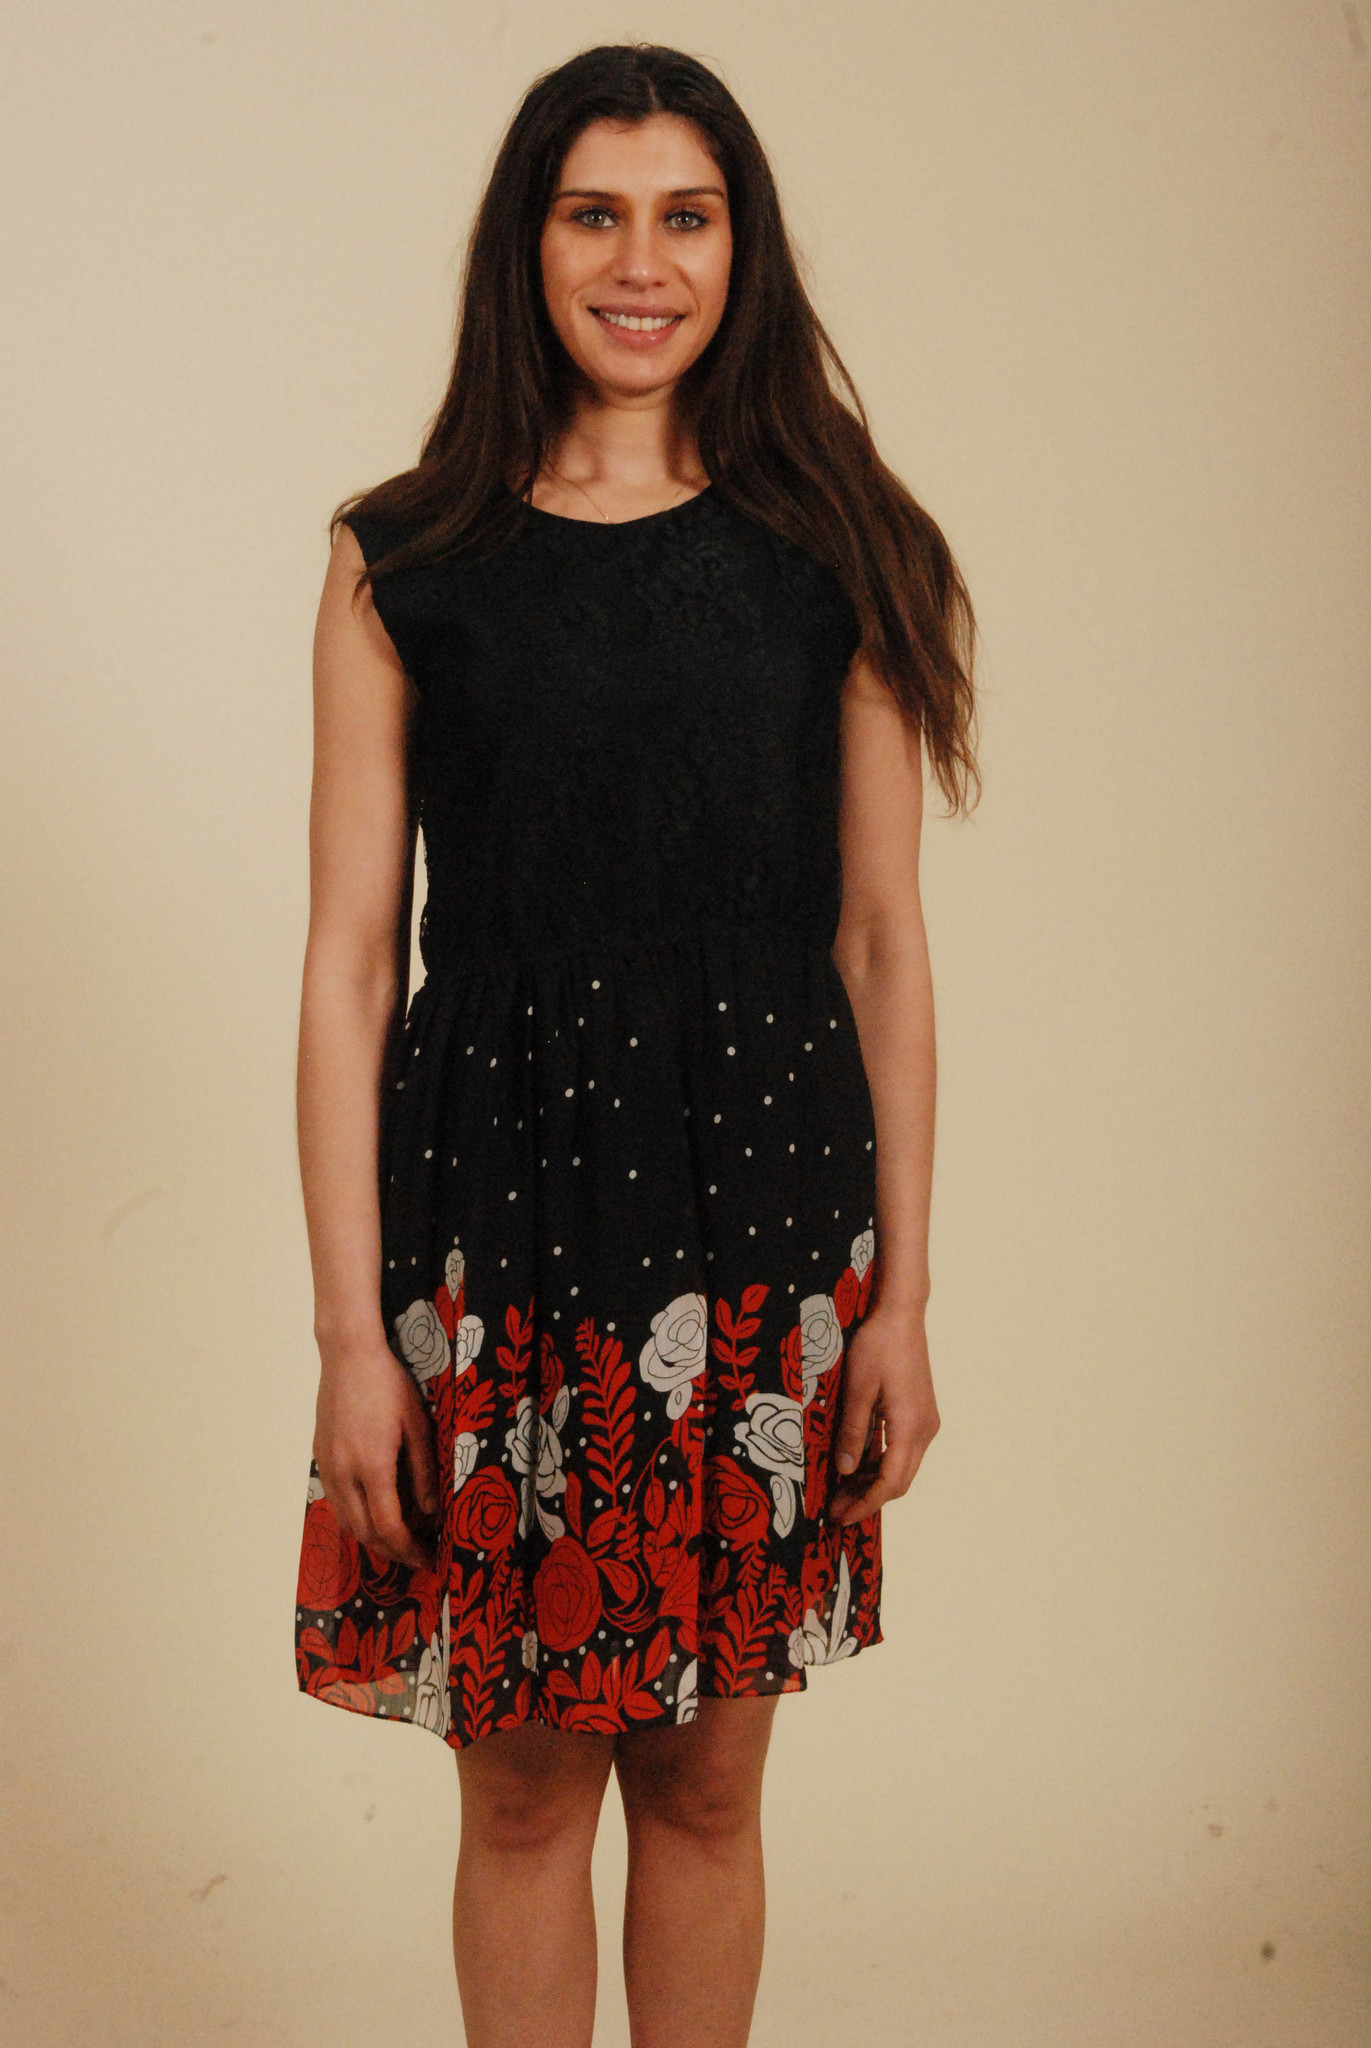 Lace 80s dress with floral print